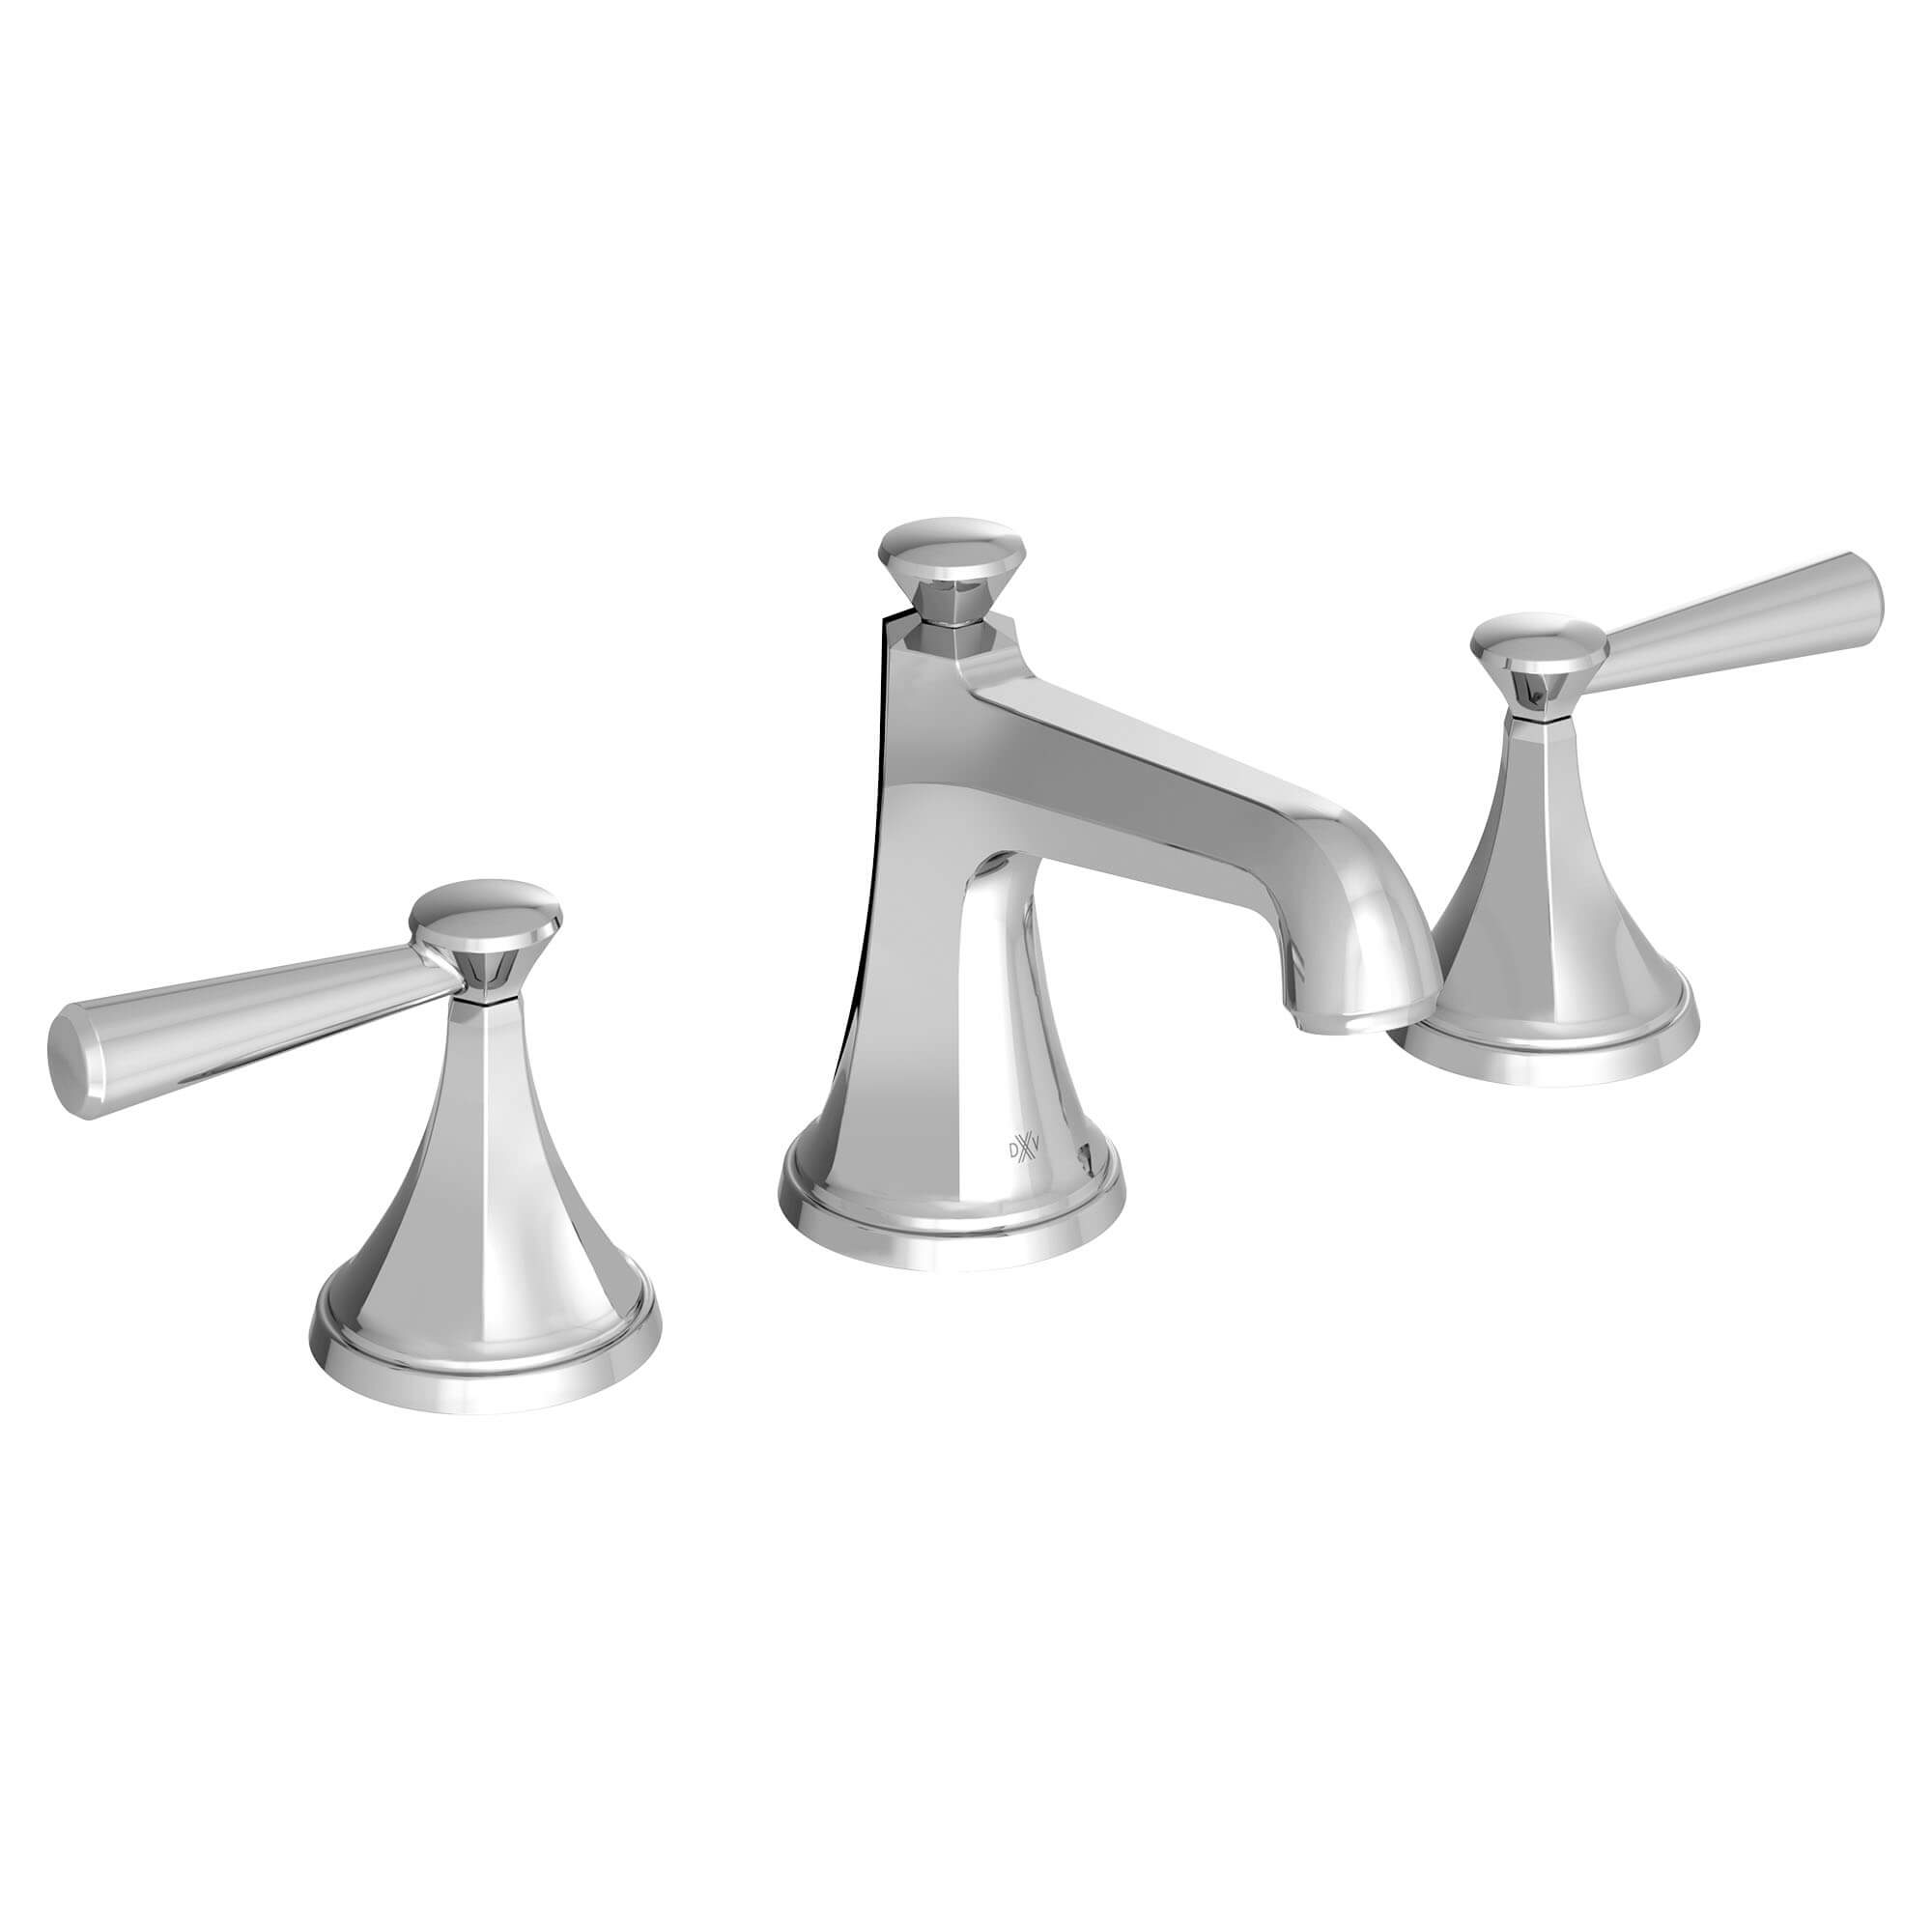 Fitzgerald Widespread Bathroom Faucet